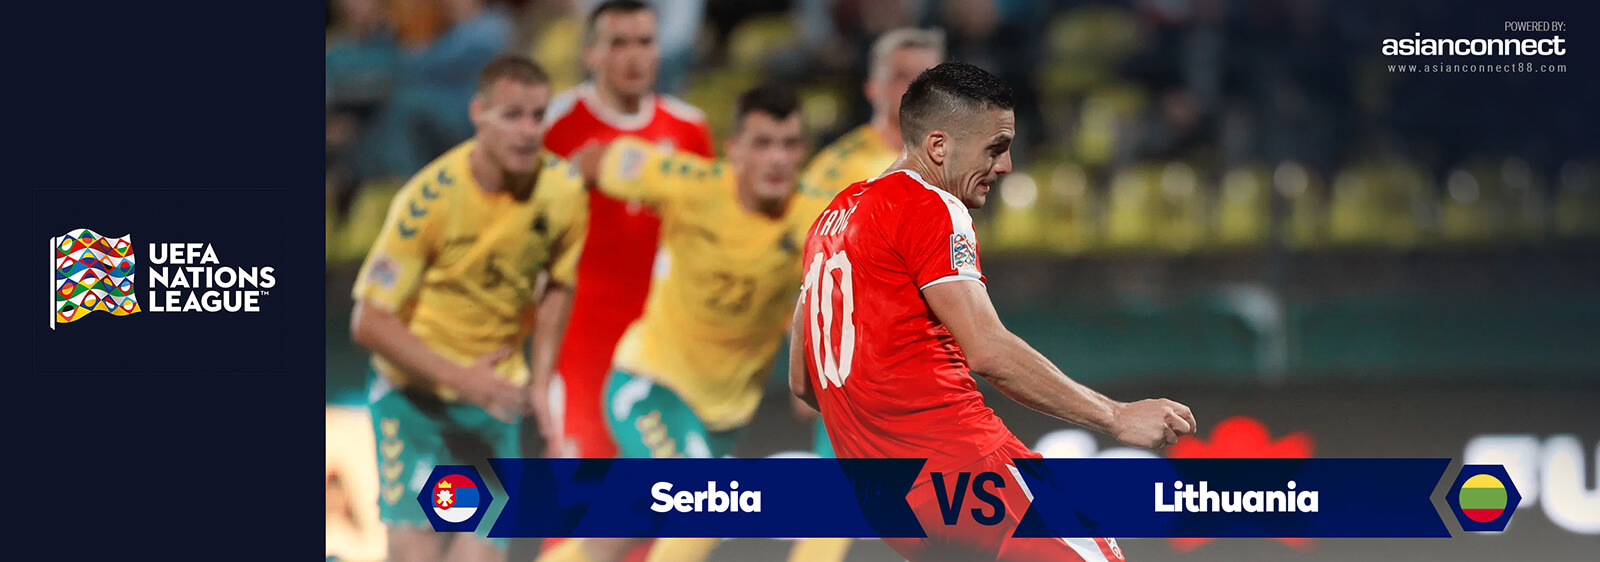 Serbia vs Lithuania AsianOdds